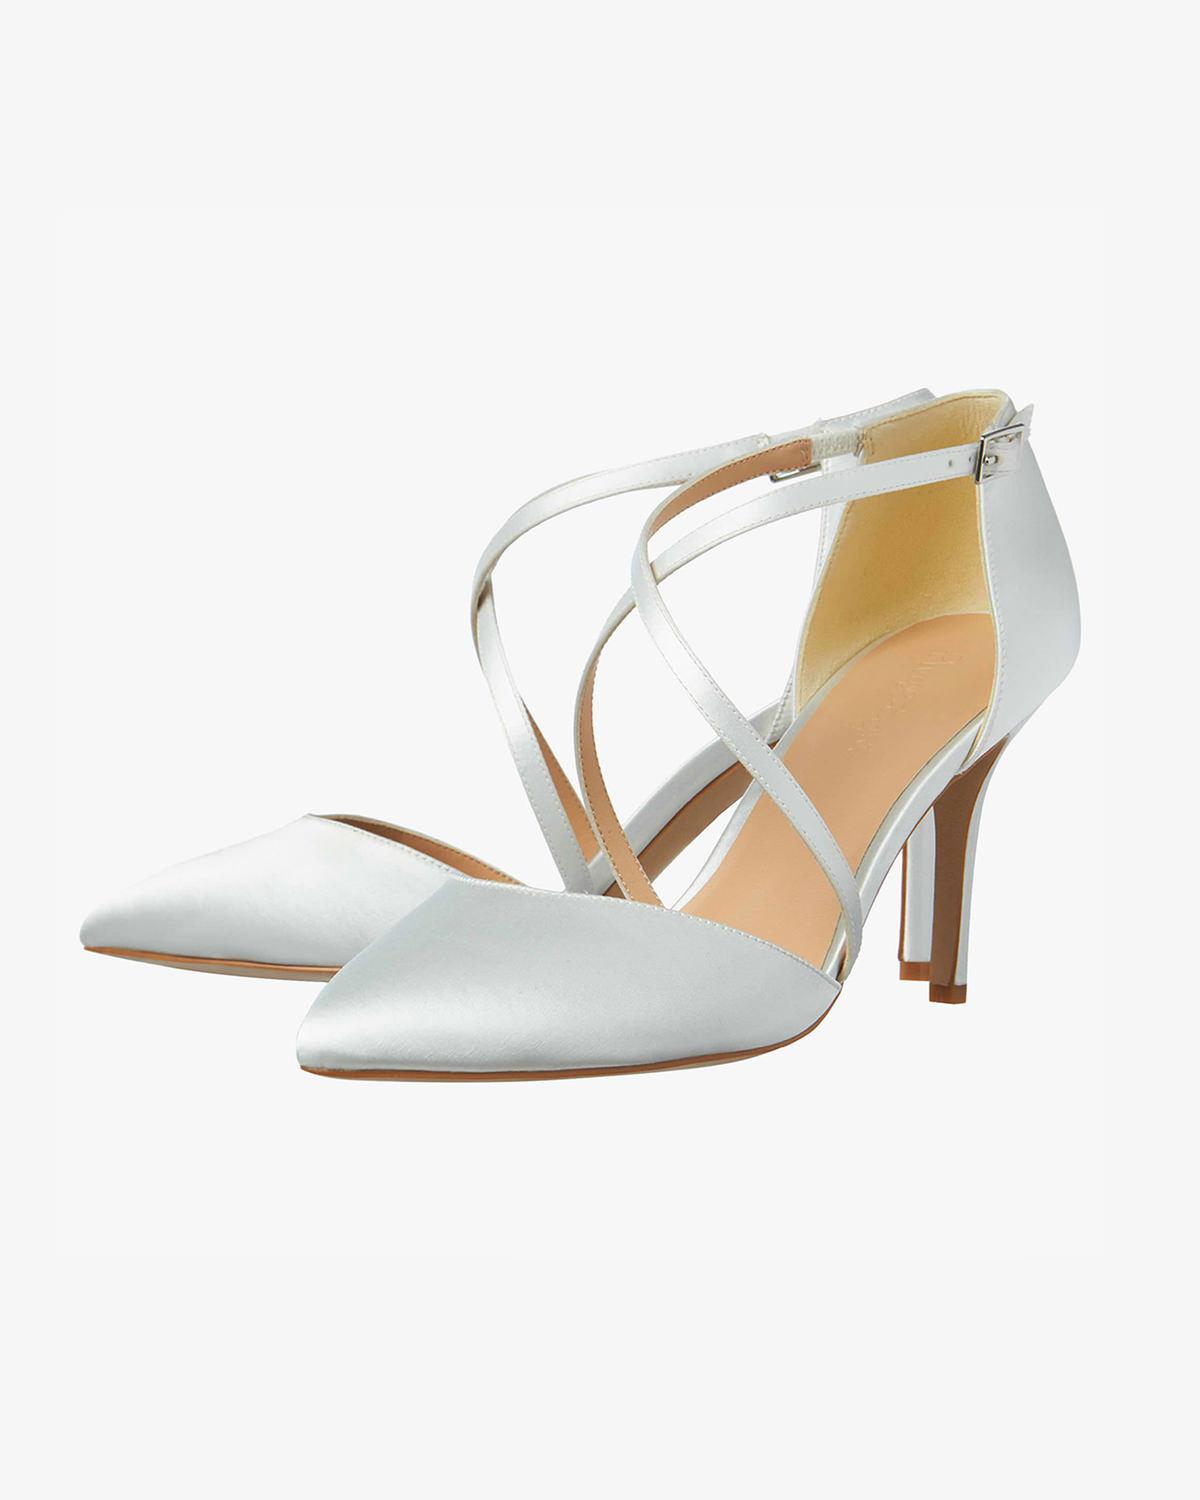 94b6eb9b641 Lyst - Phase Eight Satin Pointed Court Shoe in White